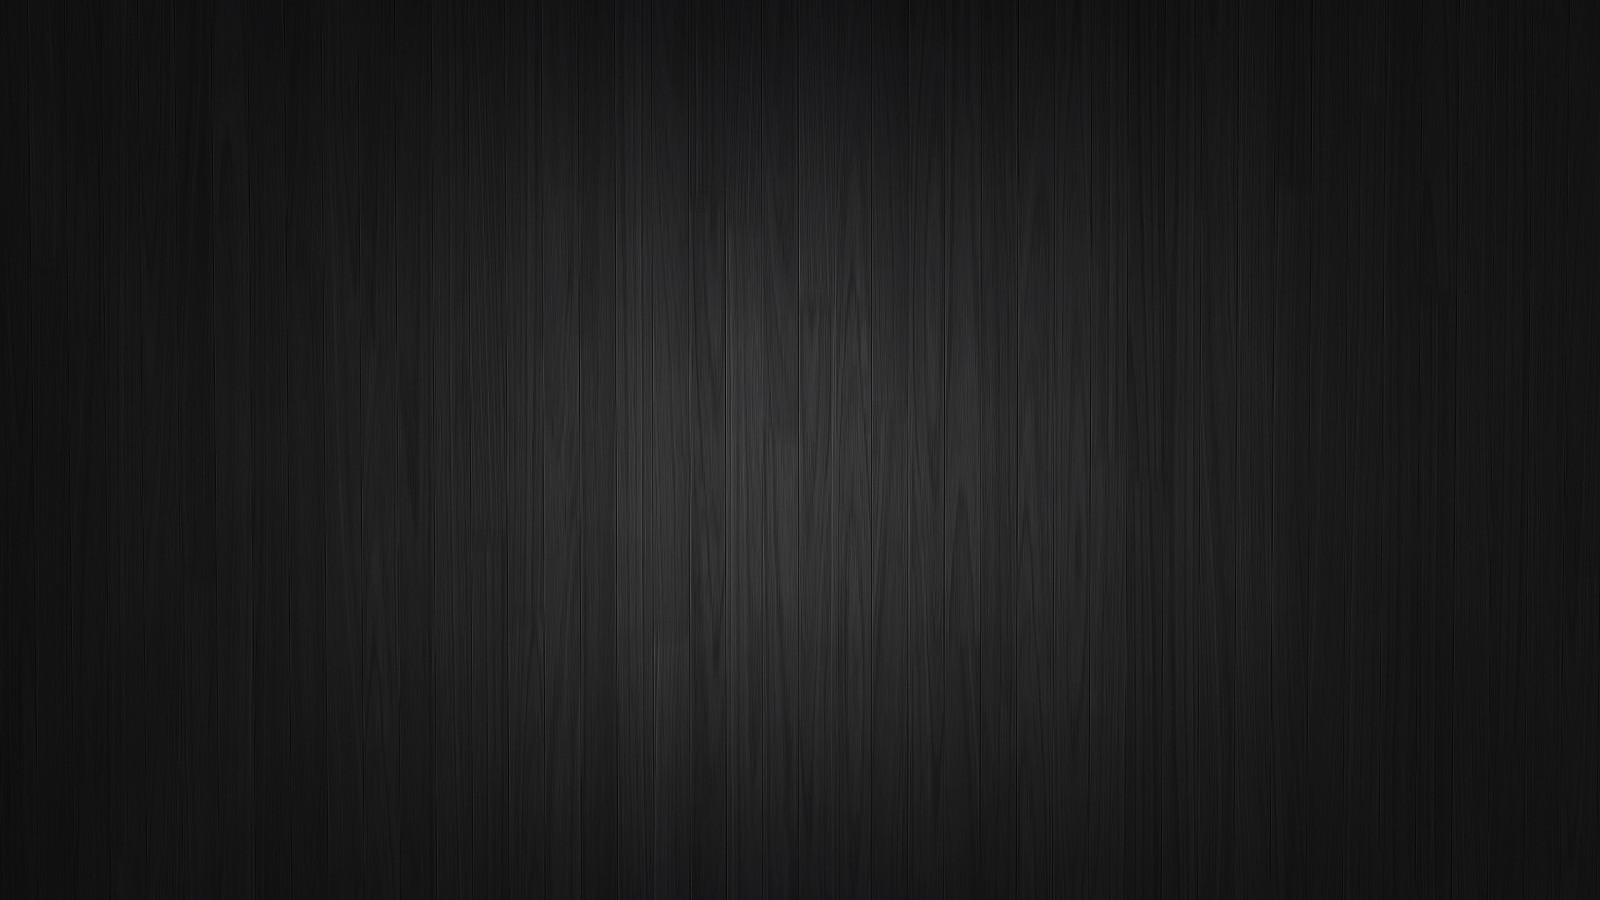 Black Dark Wallpaper 1600x900 Black Dark Wood Textures Wood 1600x900